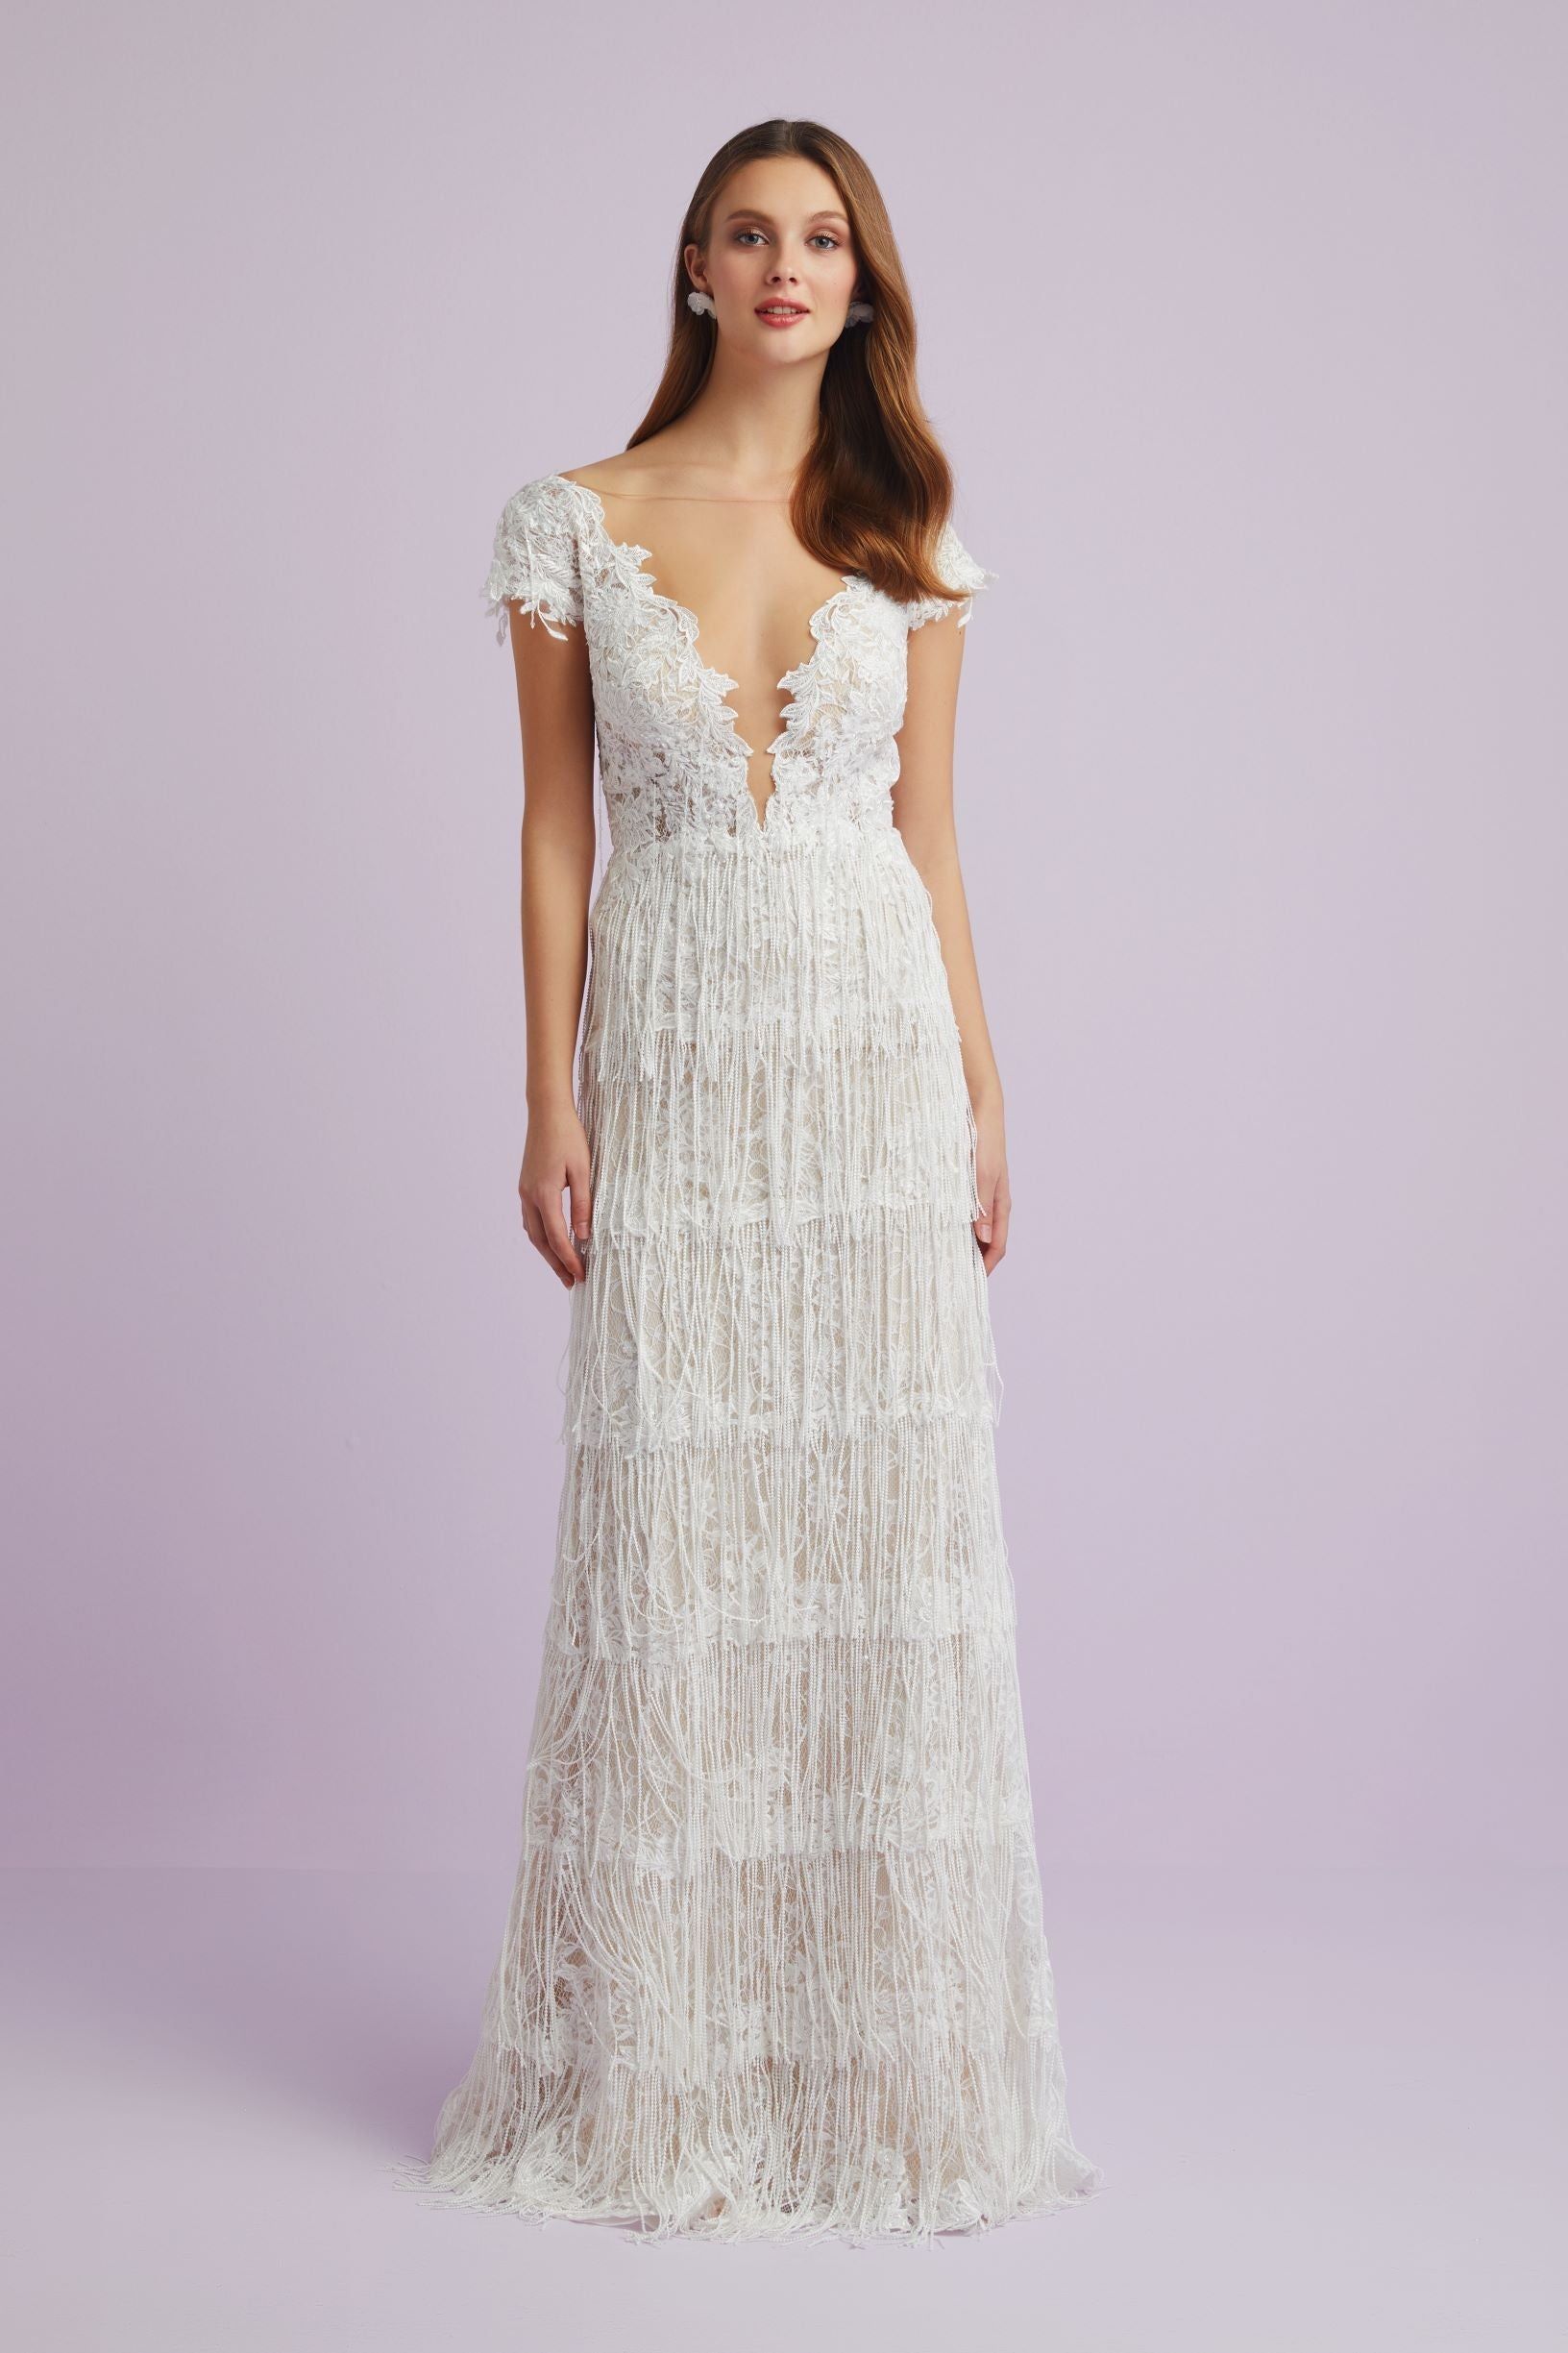 Lace gown with beaded tassel skirt